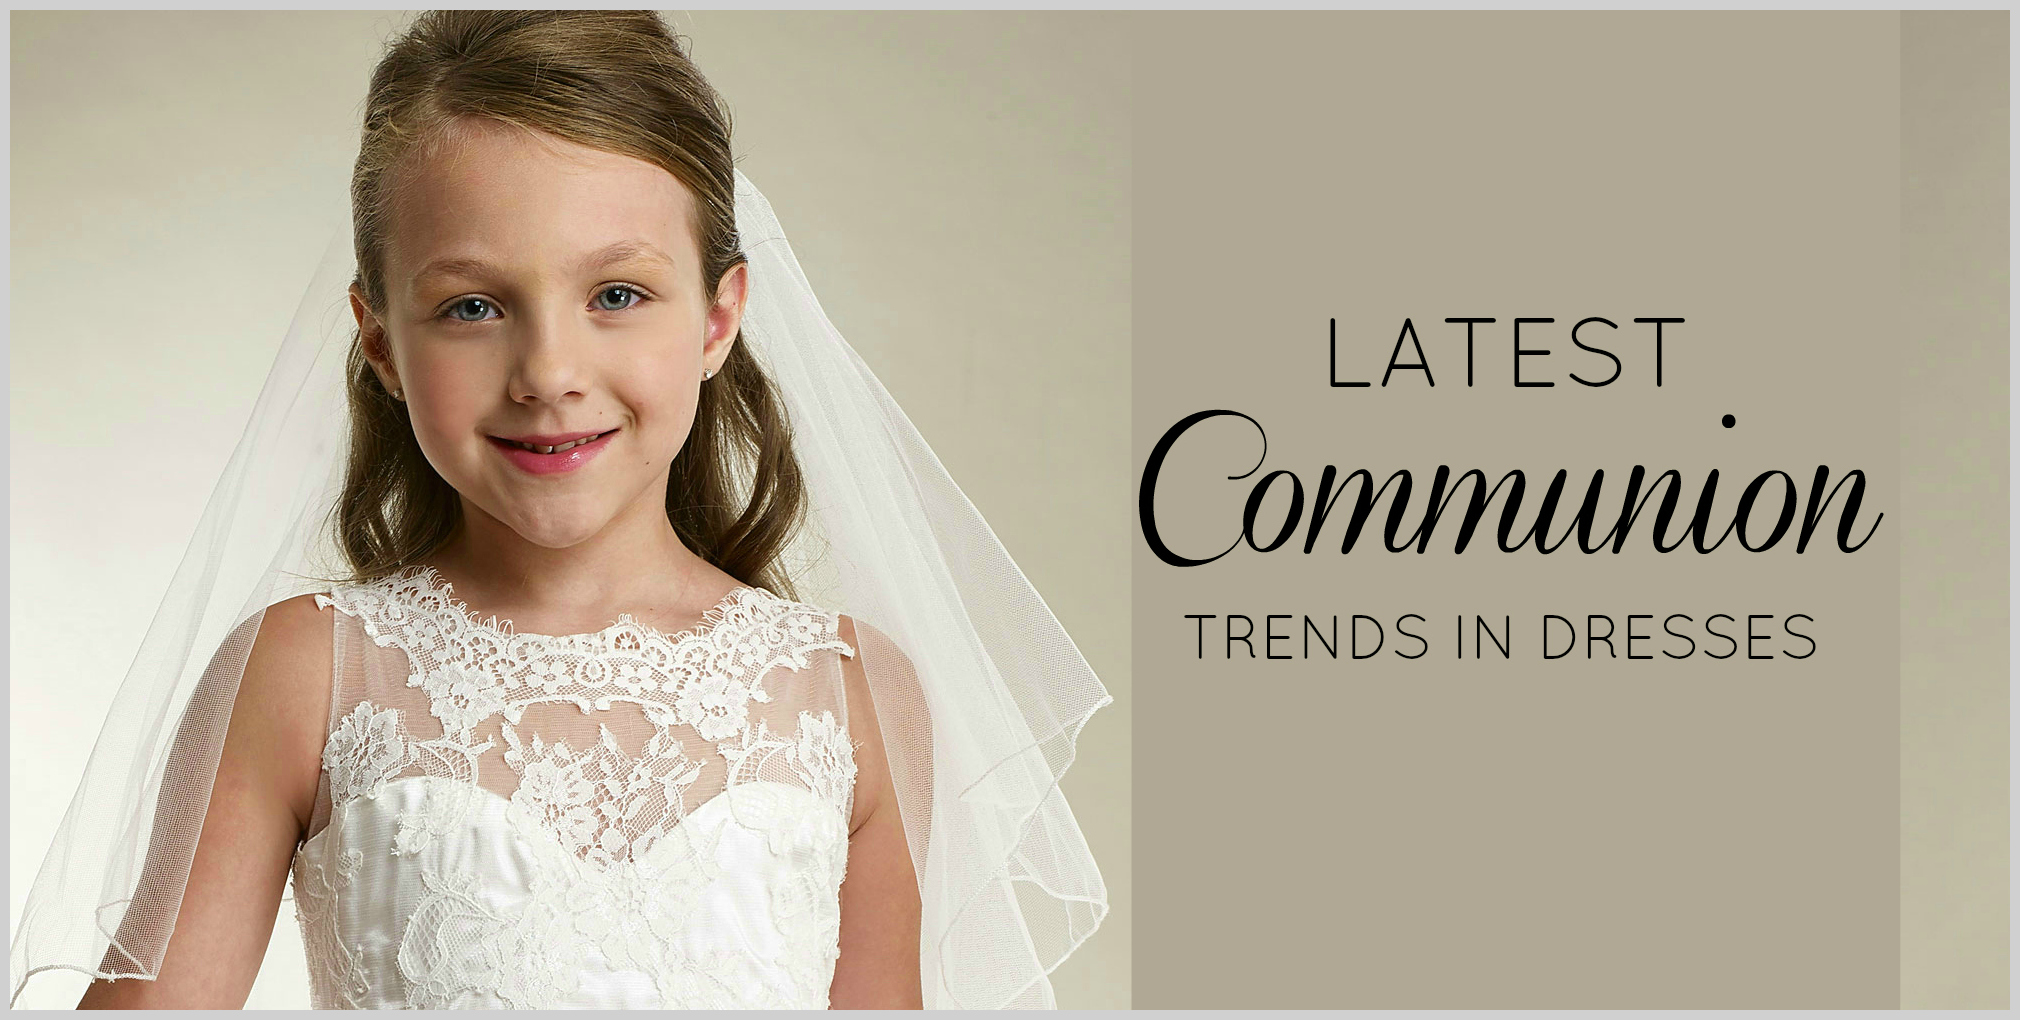 First Communion Dresses for Less